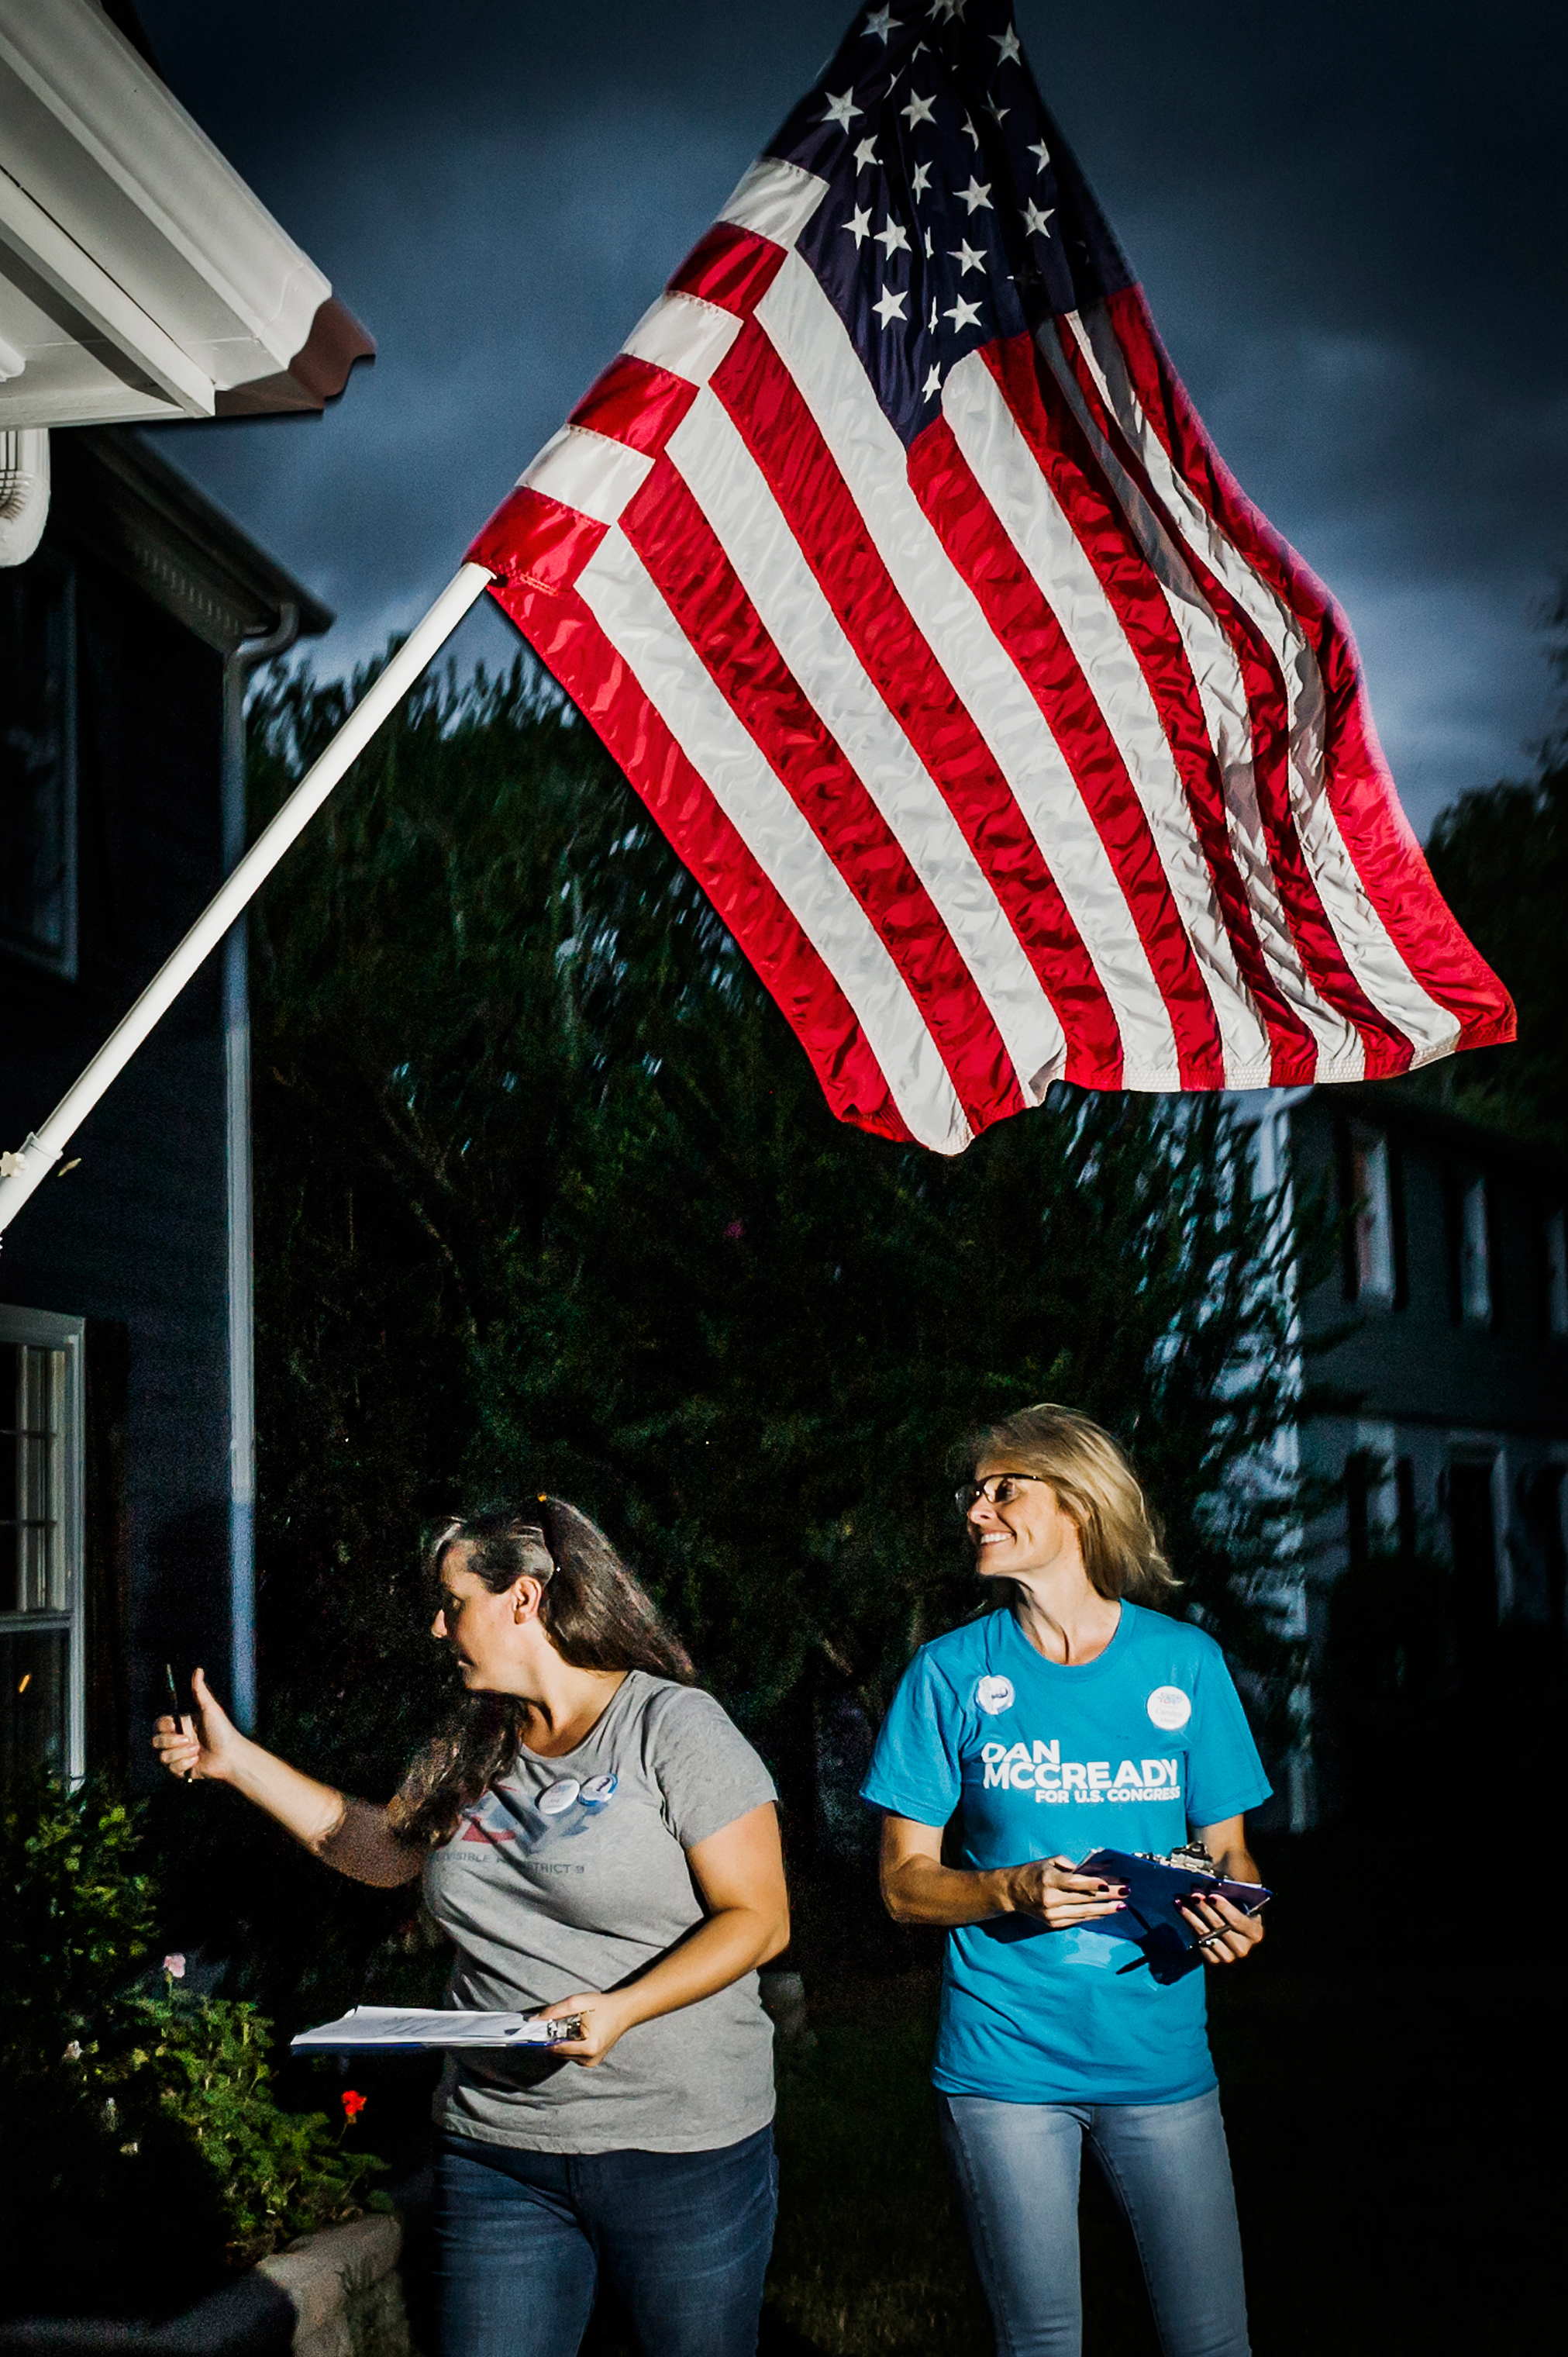 Indivisible N.C. 9 is just one platoon in a volunteer army that took the field after Trump's election in 2016.